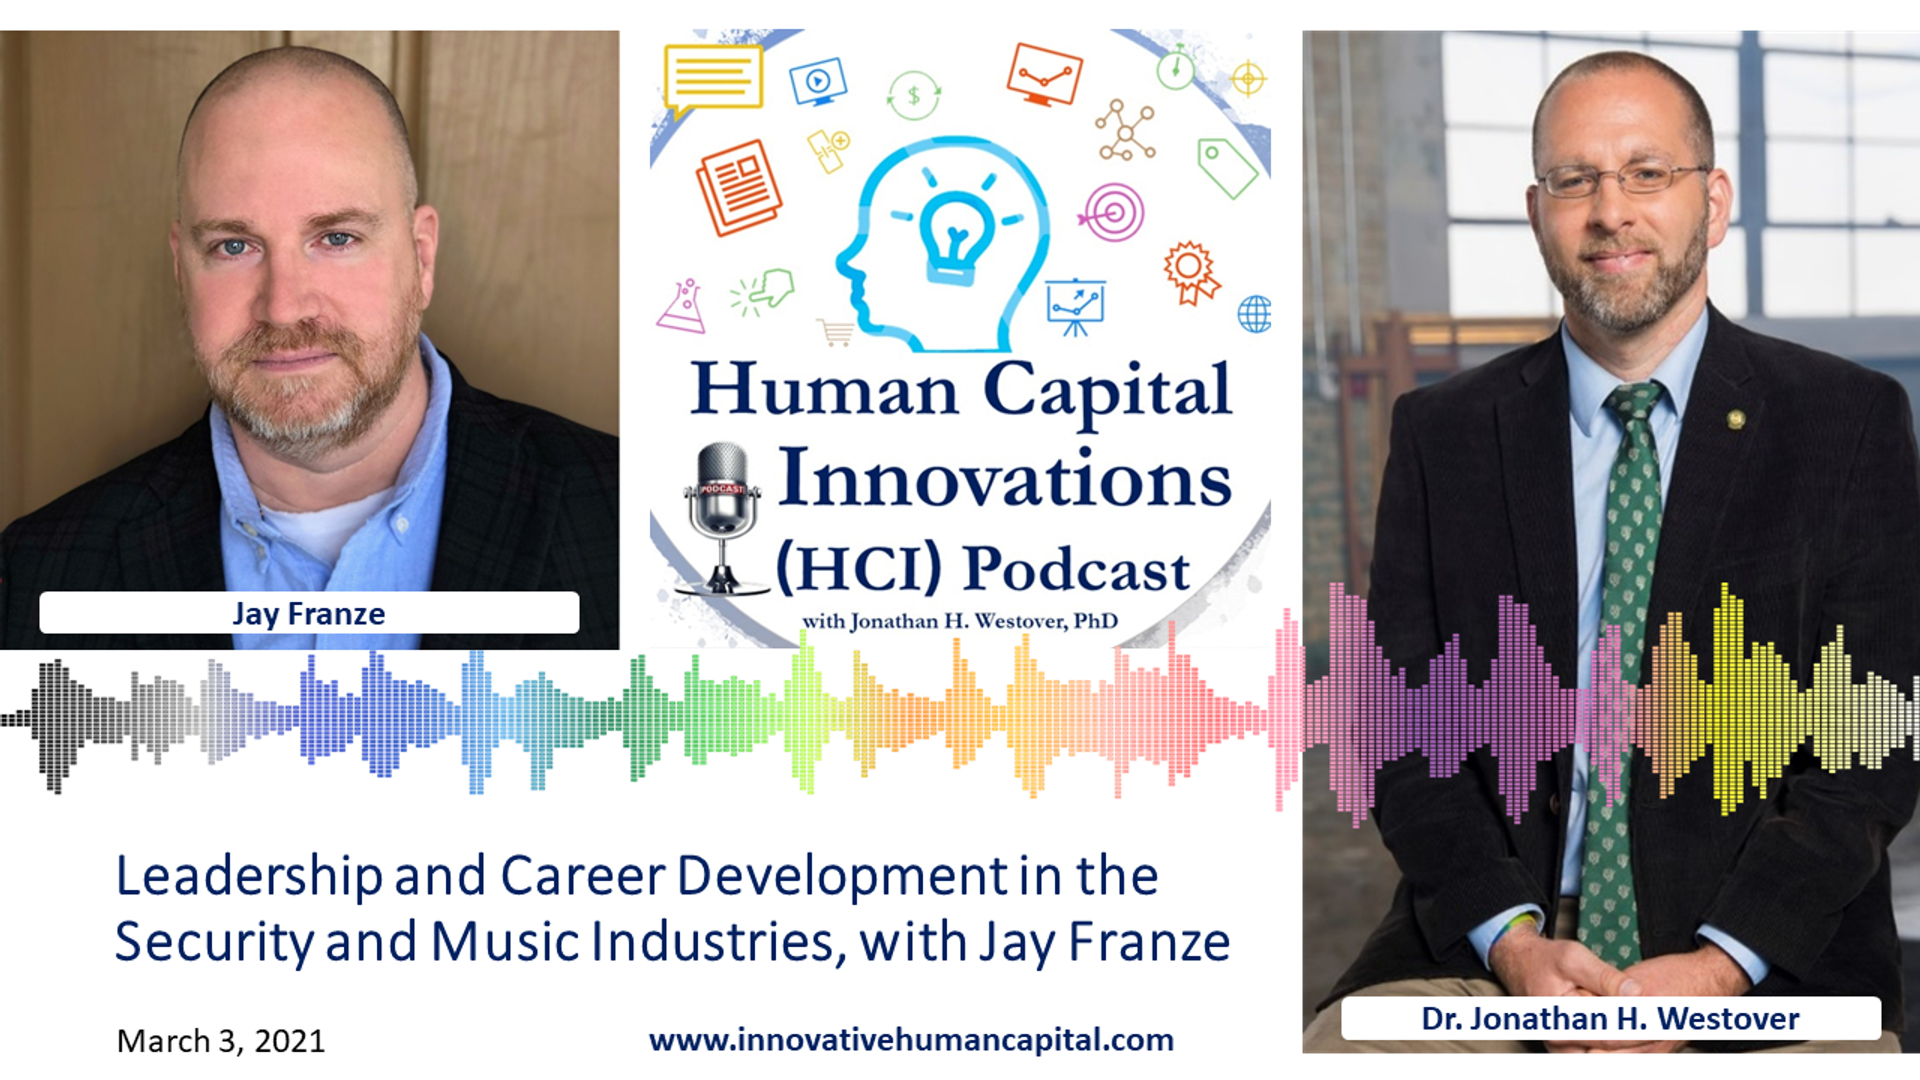 Leadership and Career Development in the Security and Music Industries